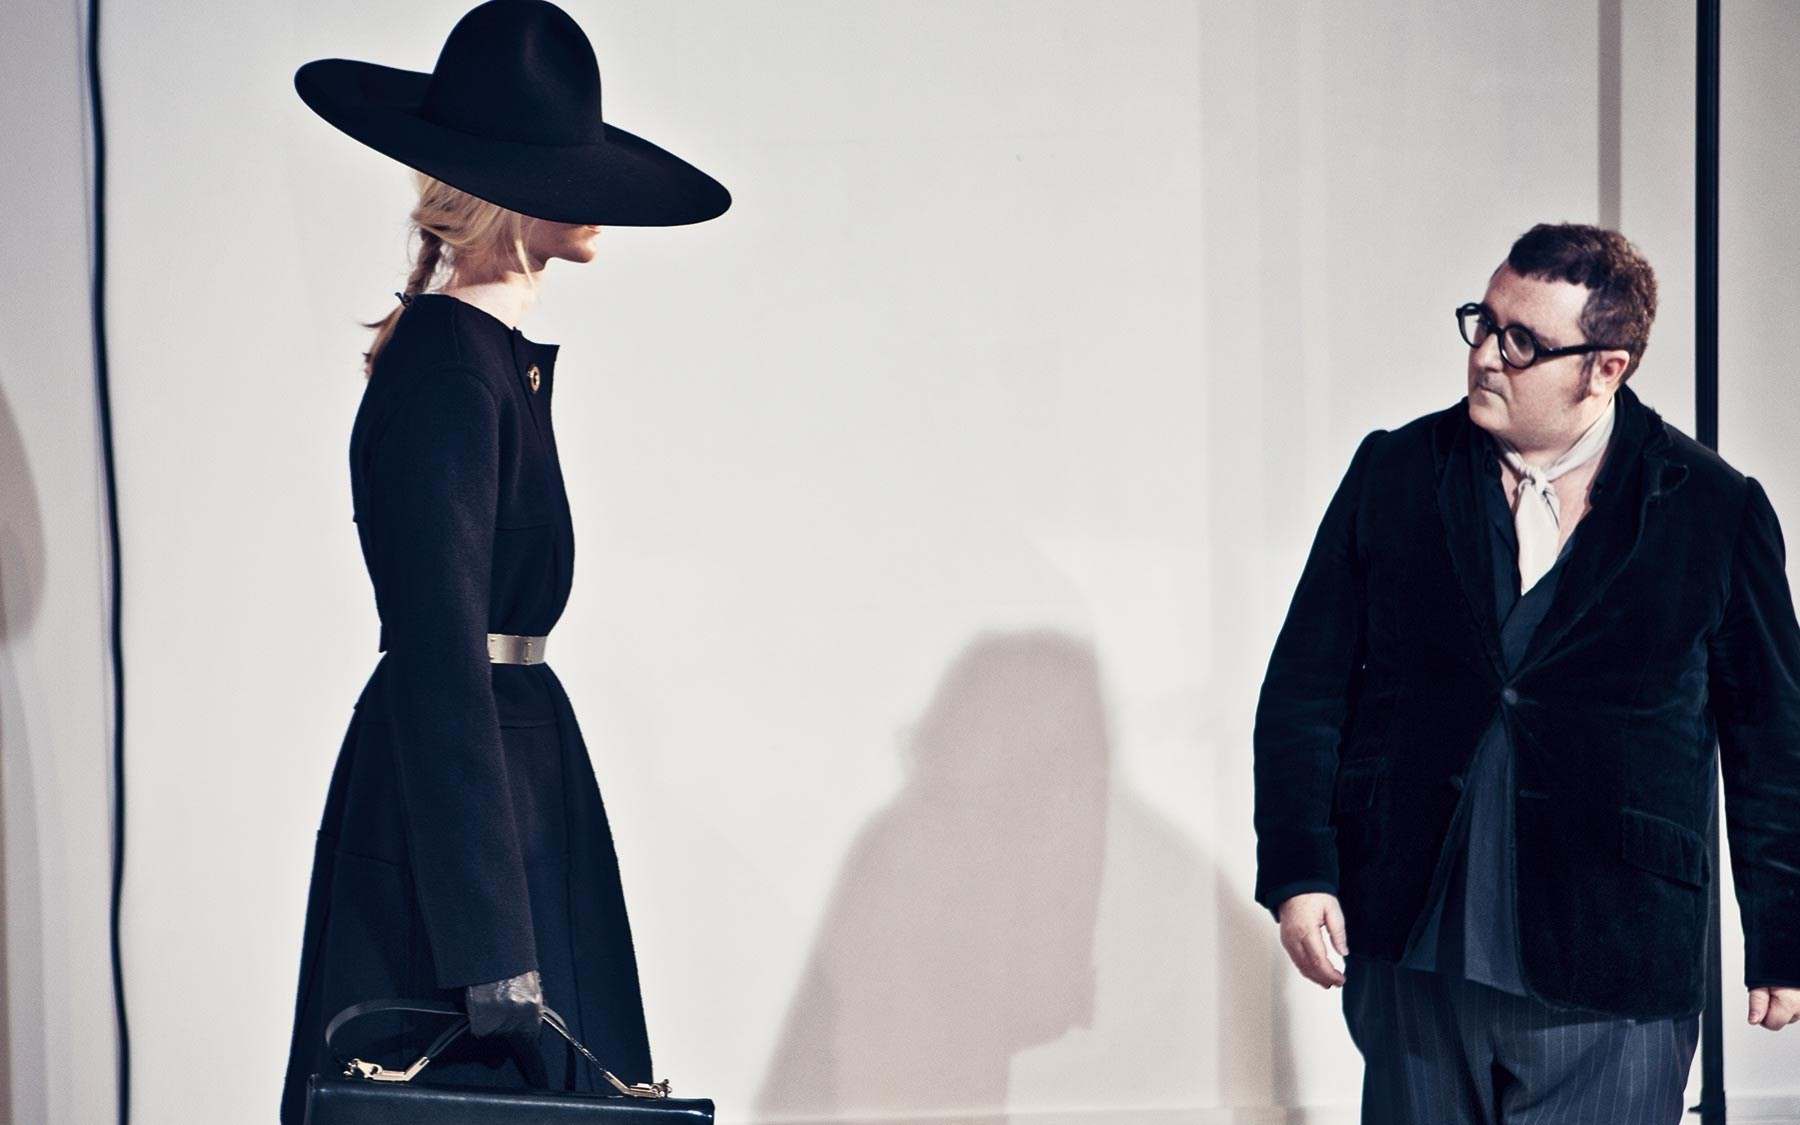 Alber Elbaz leaves Lanvin after 14 years